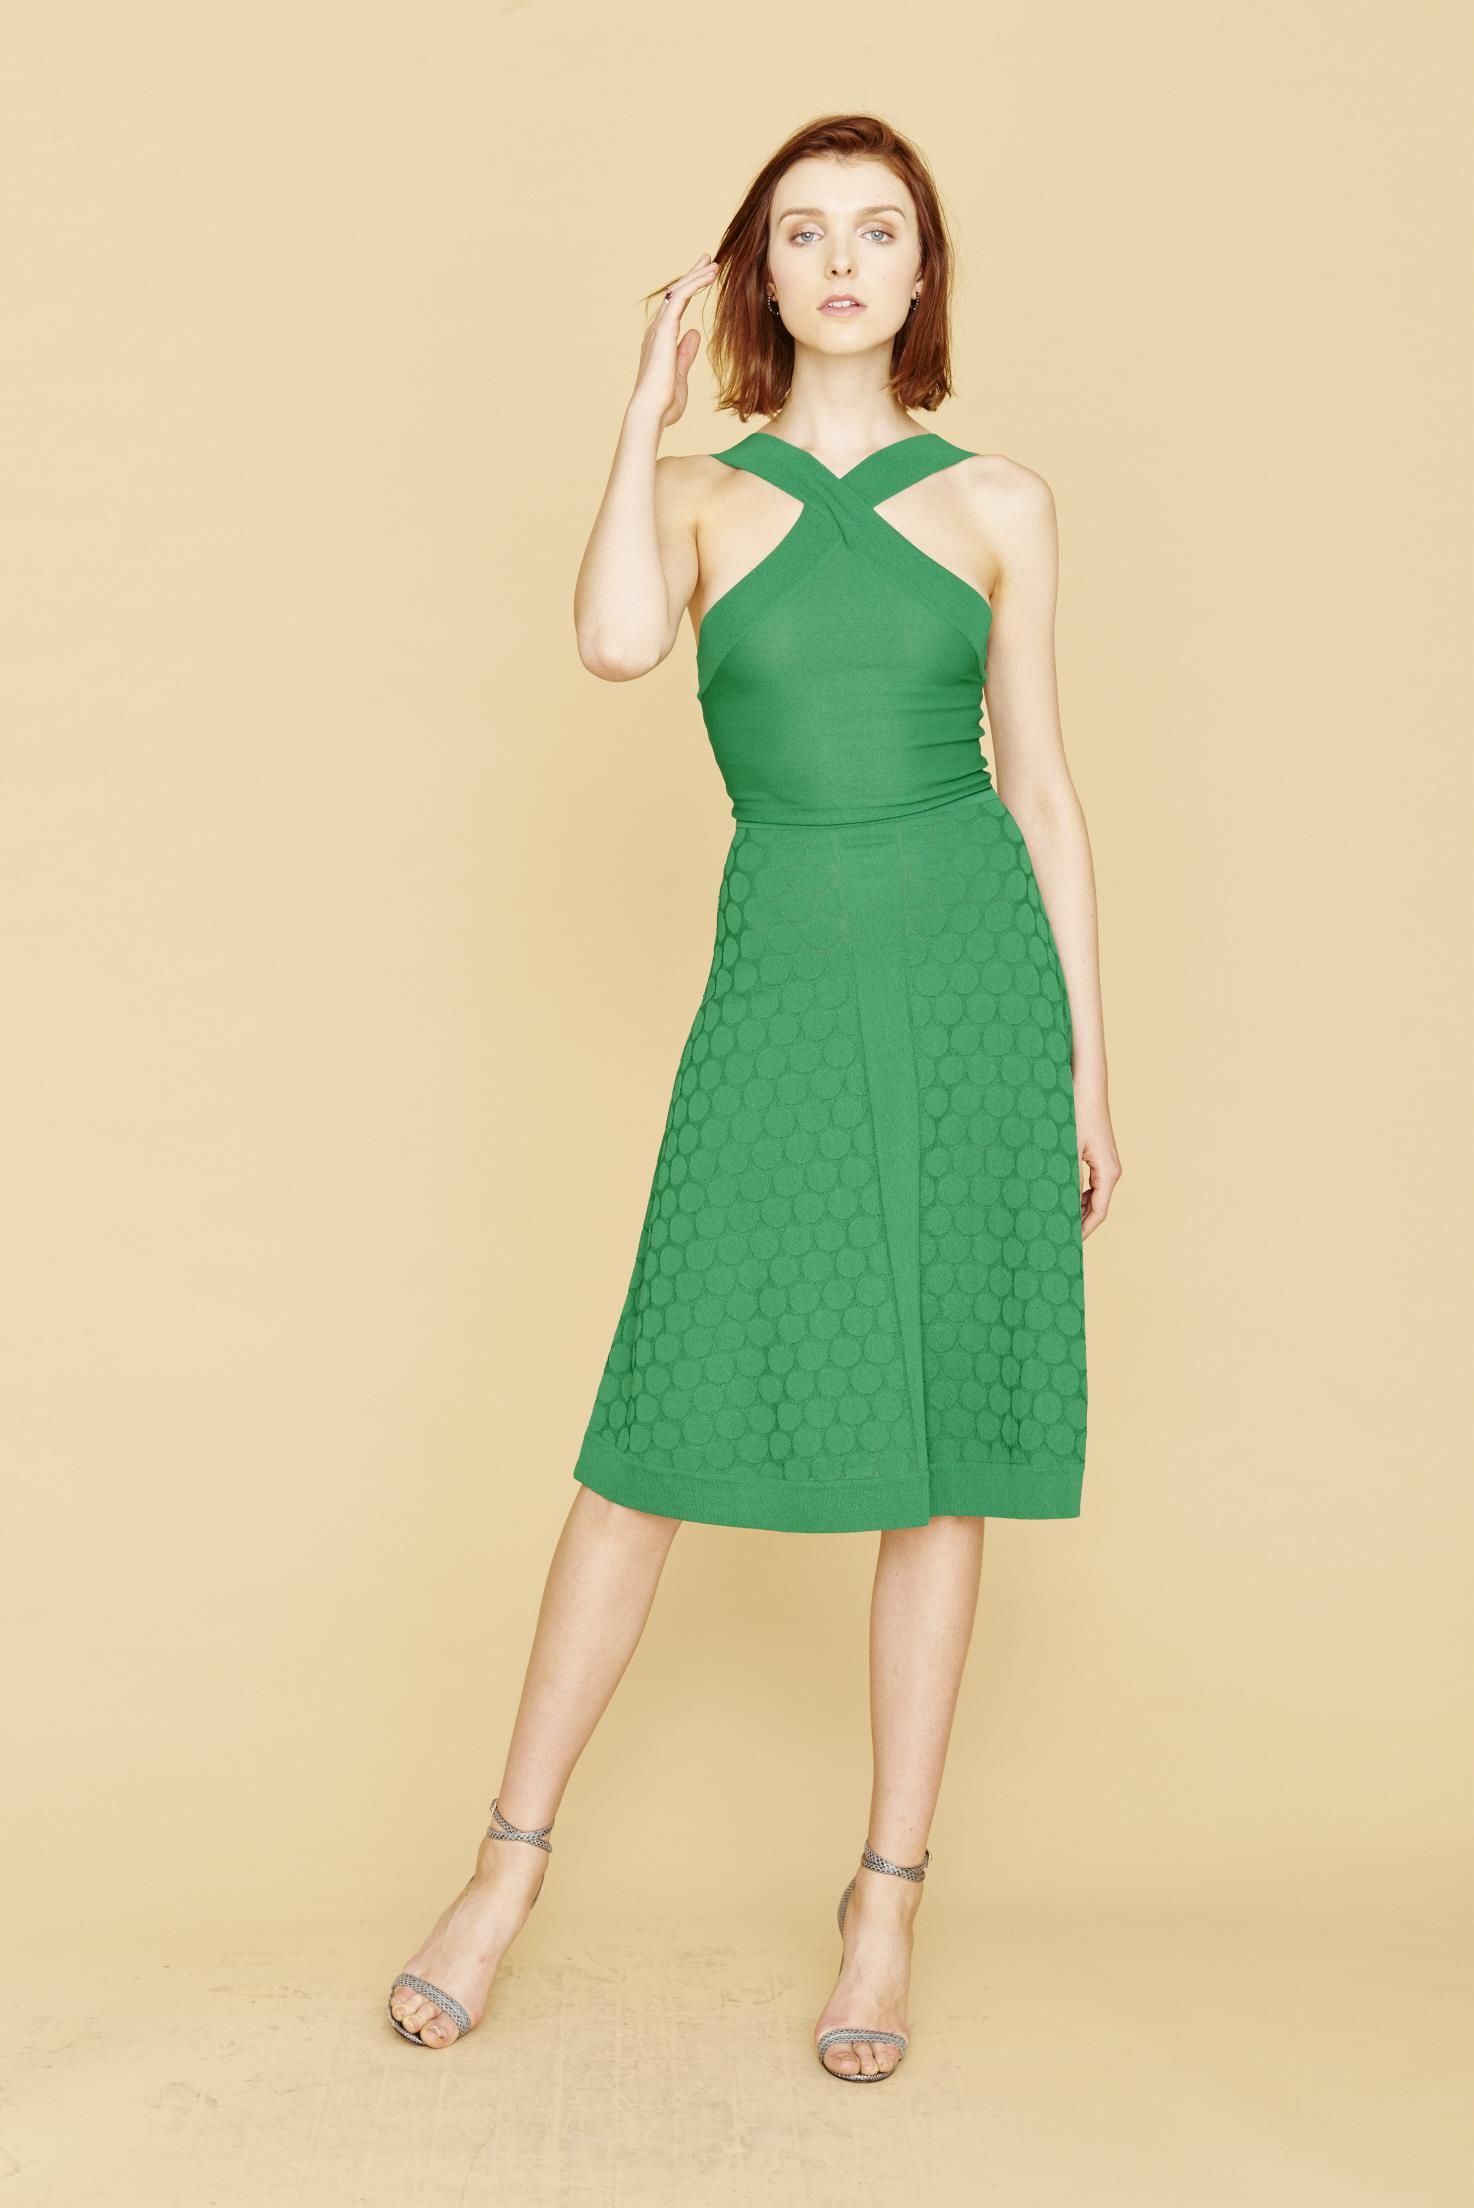 efb46c610a275 Clarisse - Bold Jade Green Polka Dot Dress with Cross Strap Top ...